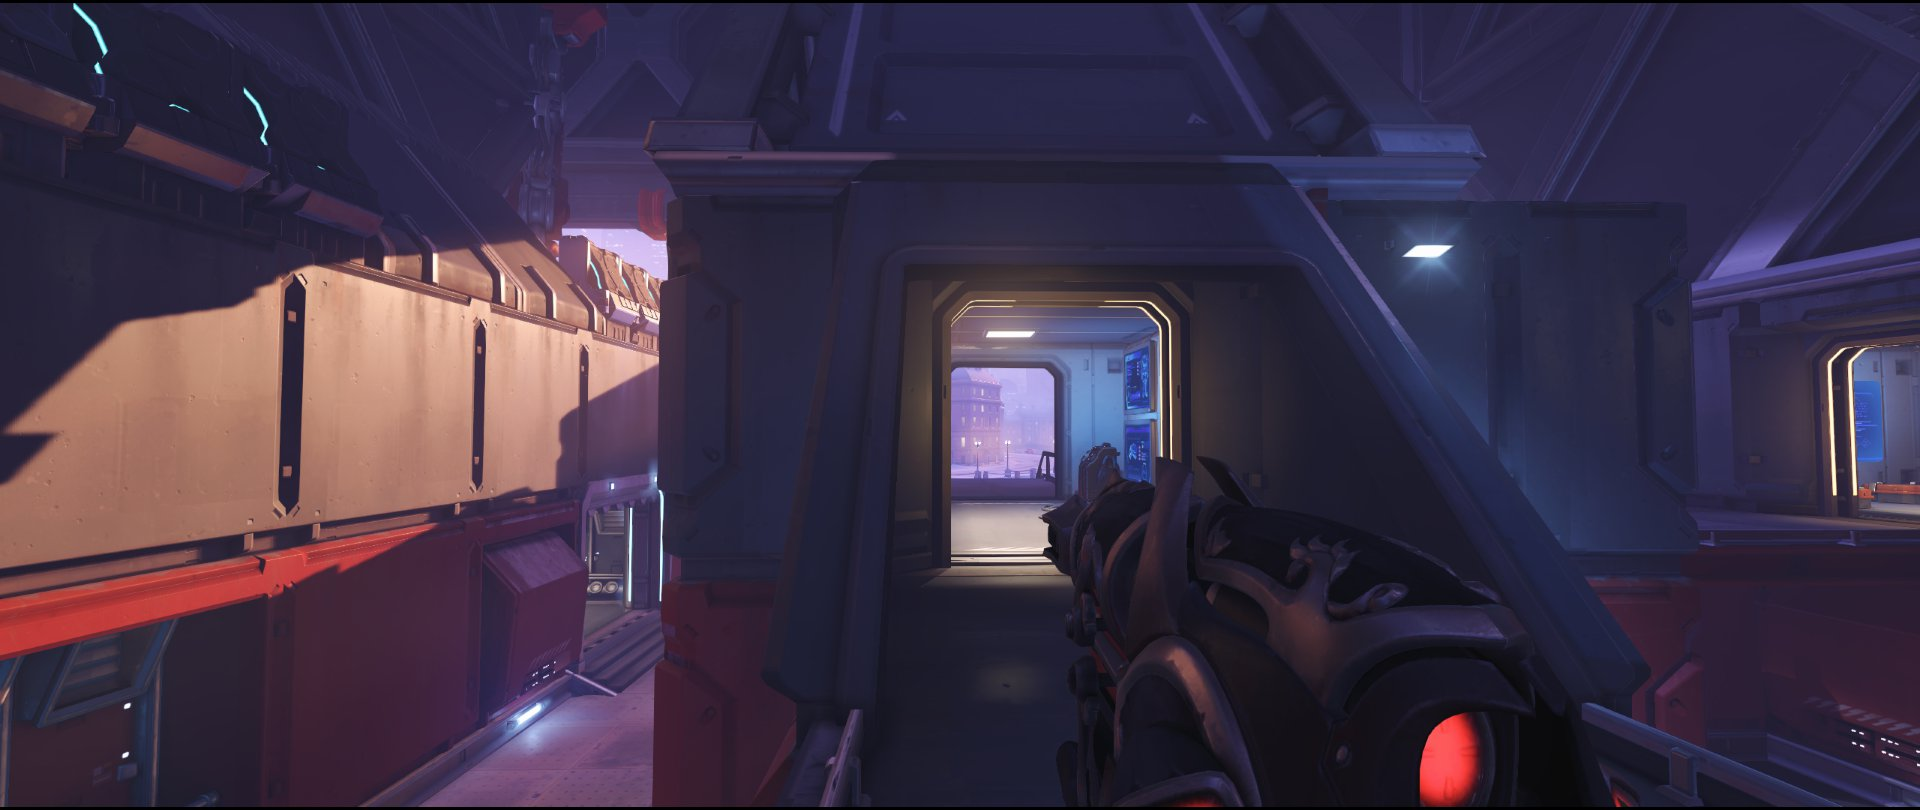 Bridge high ground defense sniping spot Widowmaker Volskaya Industries Overwatch.jpg